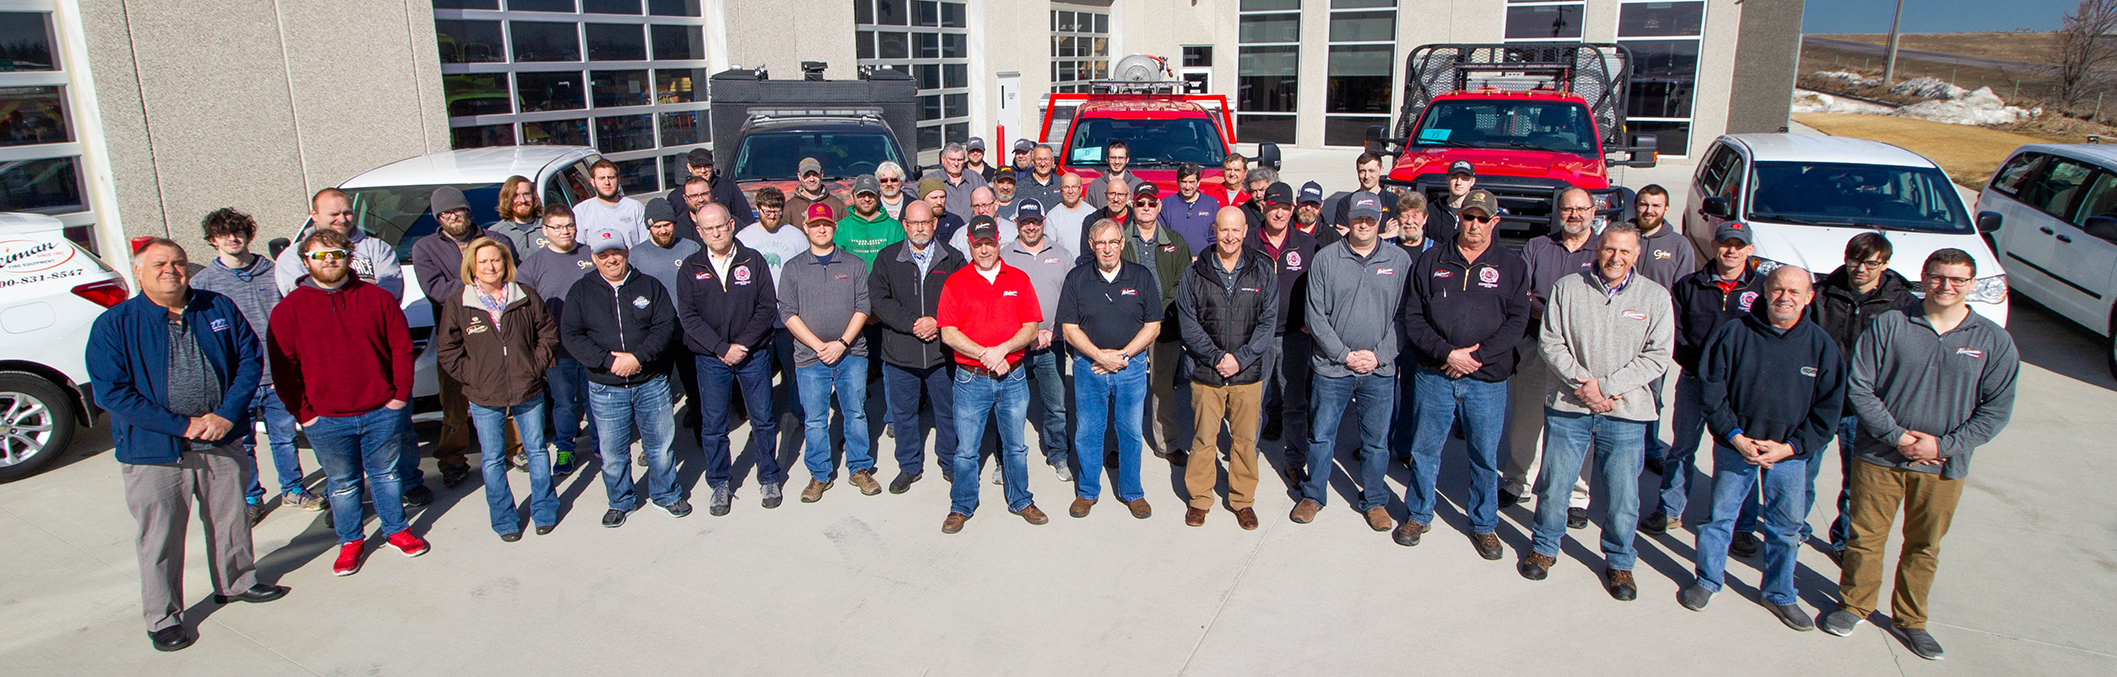 Heiman Fire Equipment Team Picture